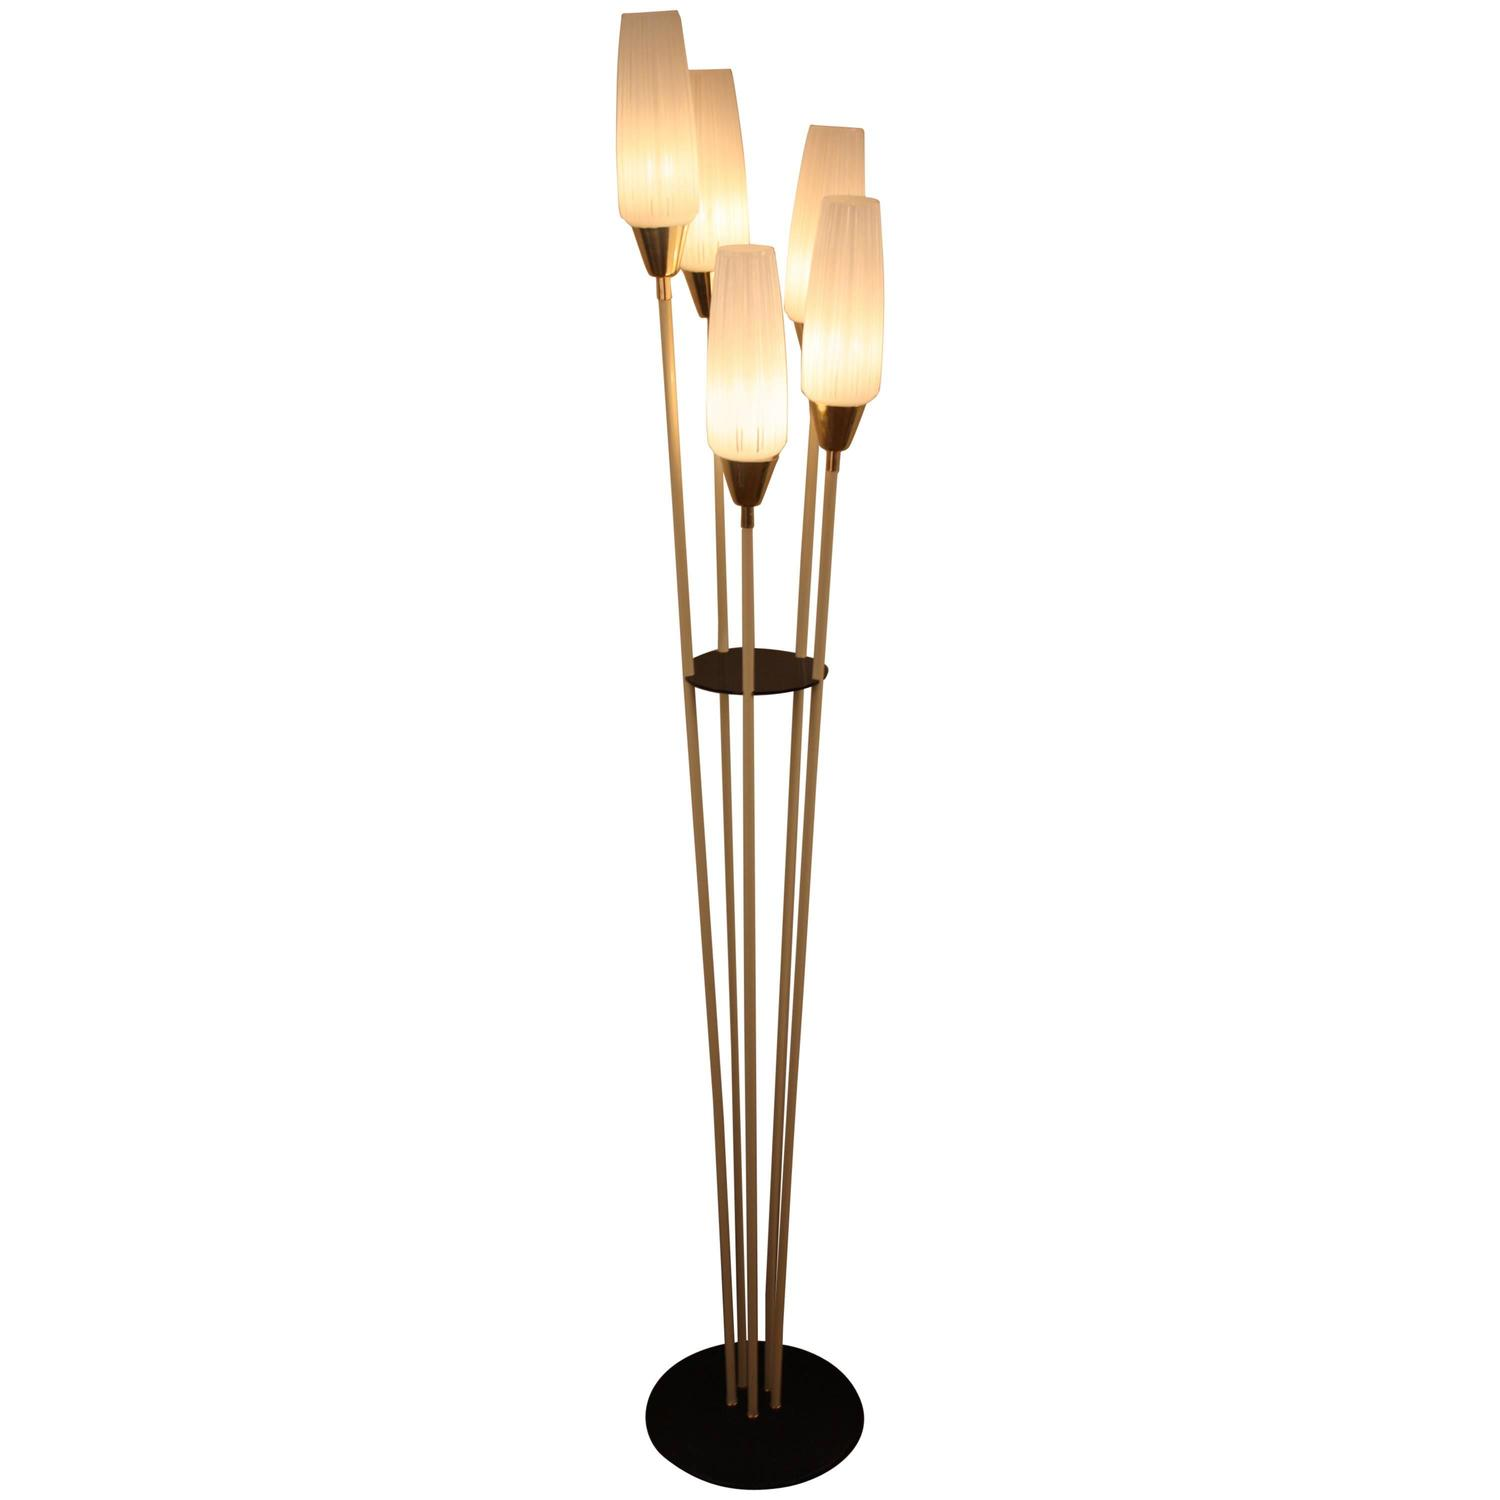 mid century french floor lamp by arlus at 1stdibs. Black Bedroom Furniture Sets. Home Design Ideas